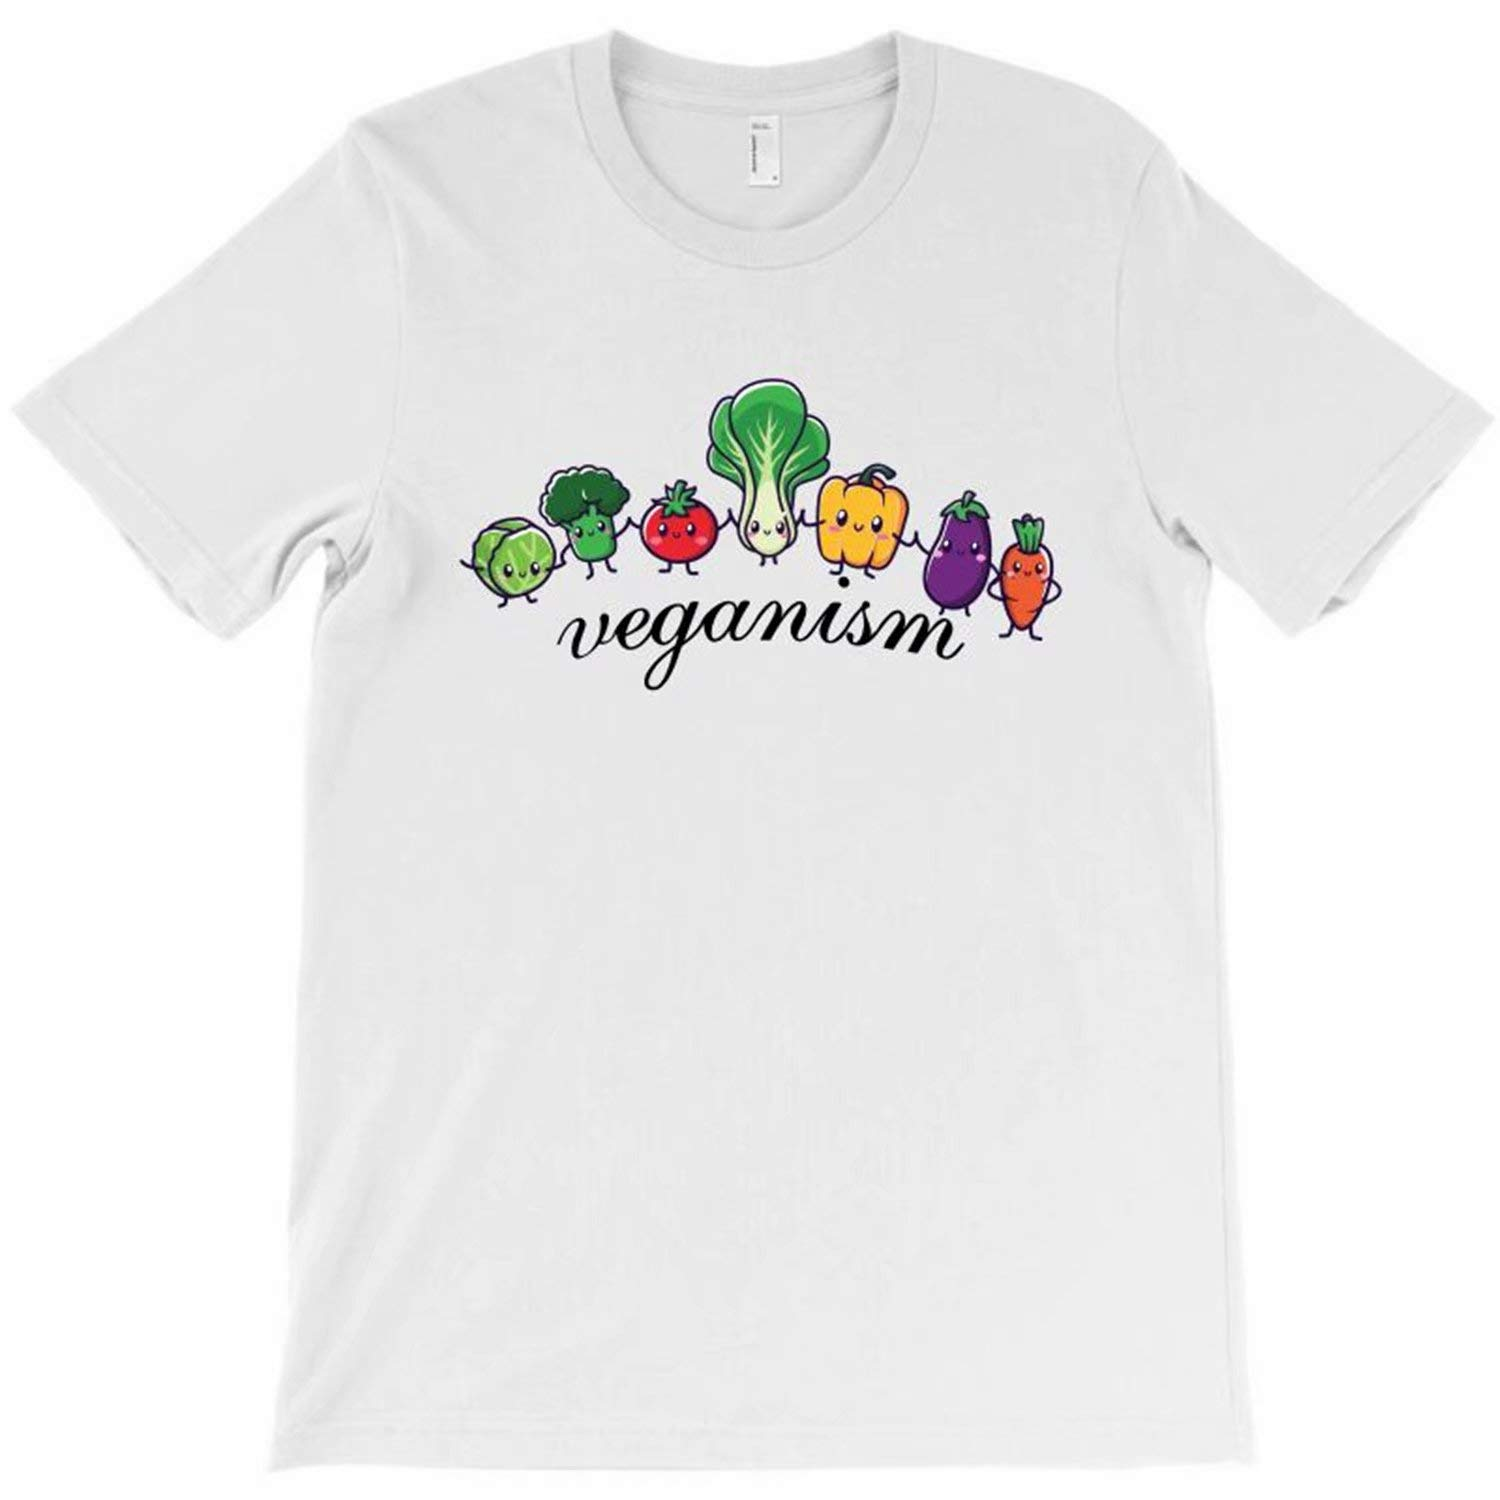 Hocoo Infant Boys Girls Cute Tee Veganism T-Shirt 6M-24M